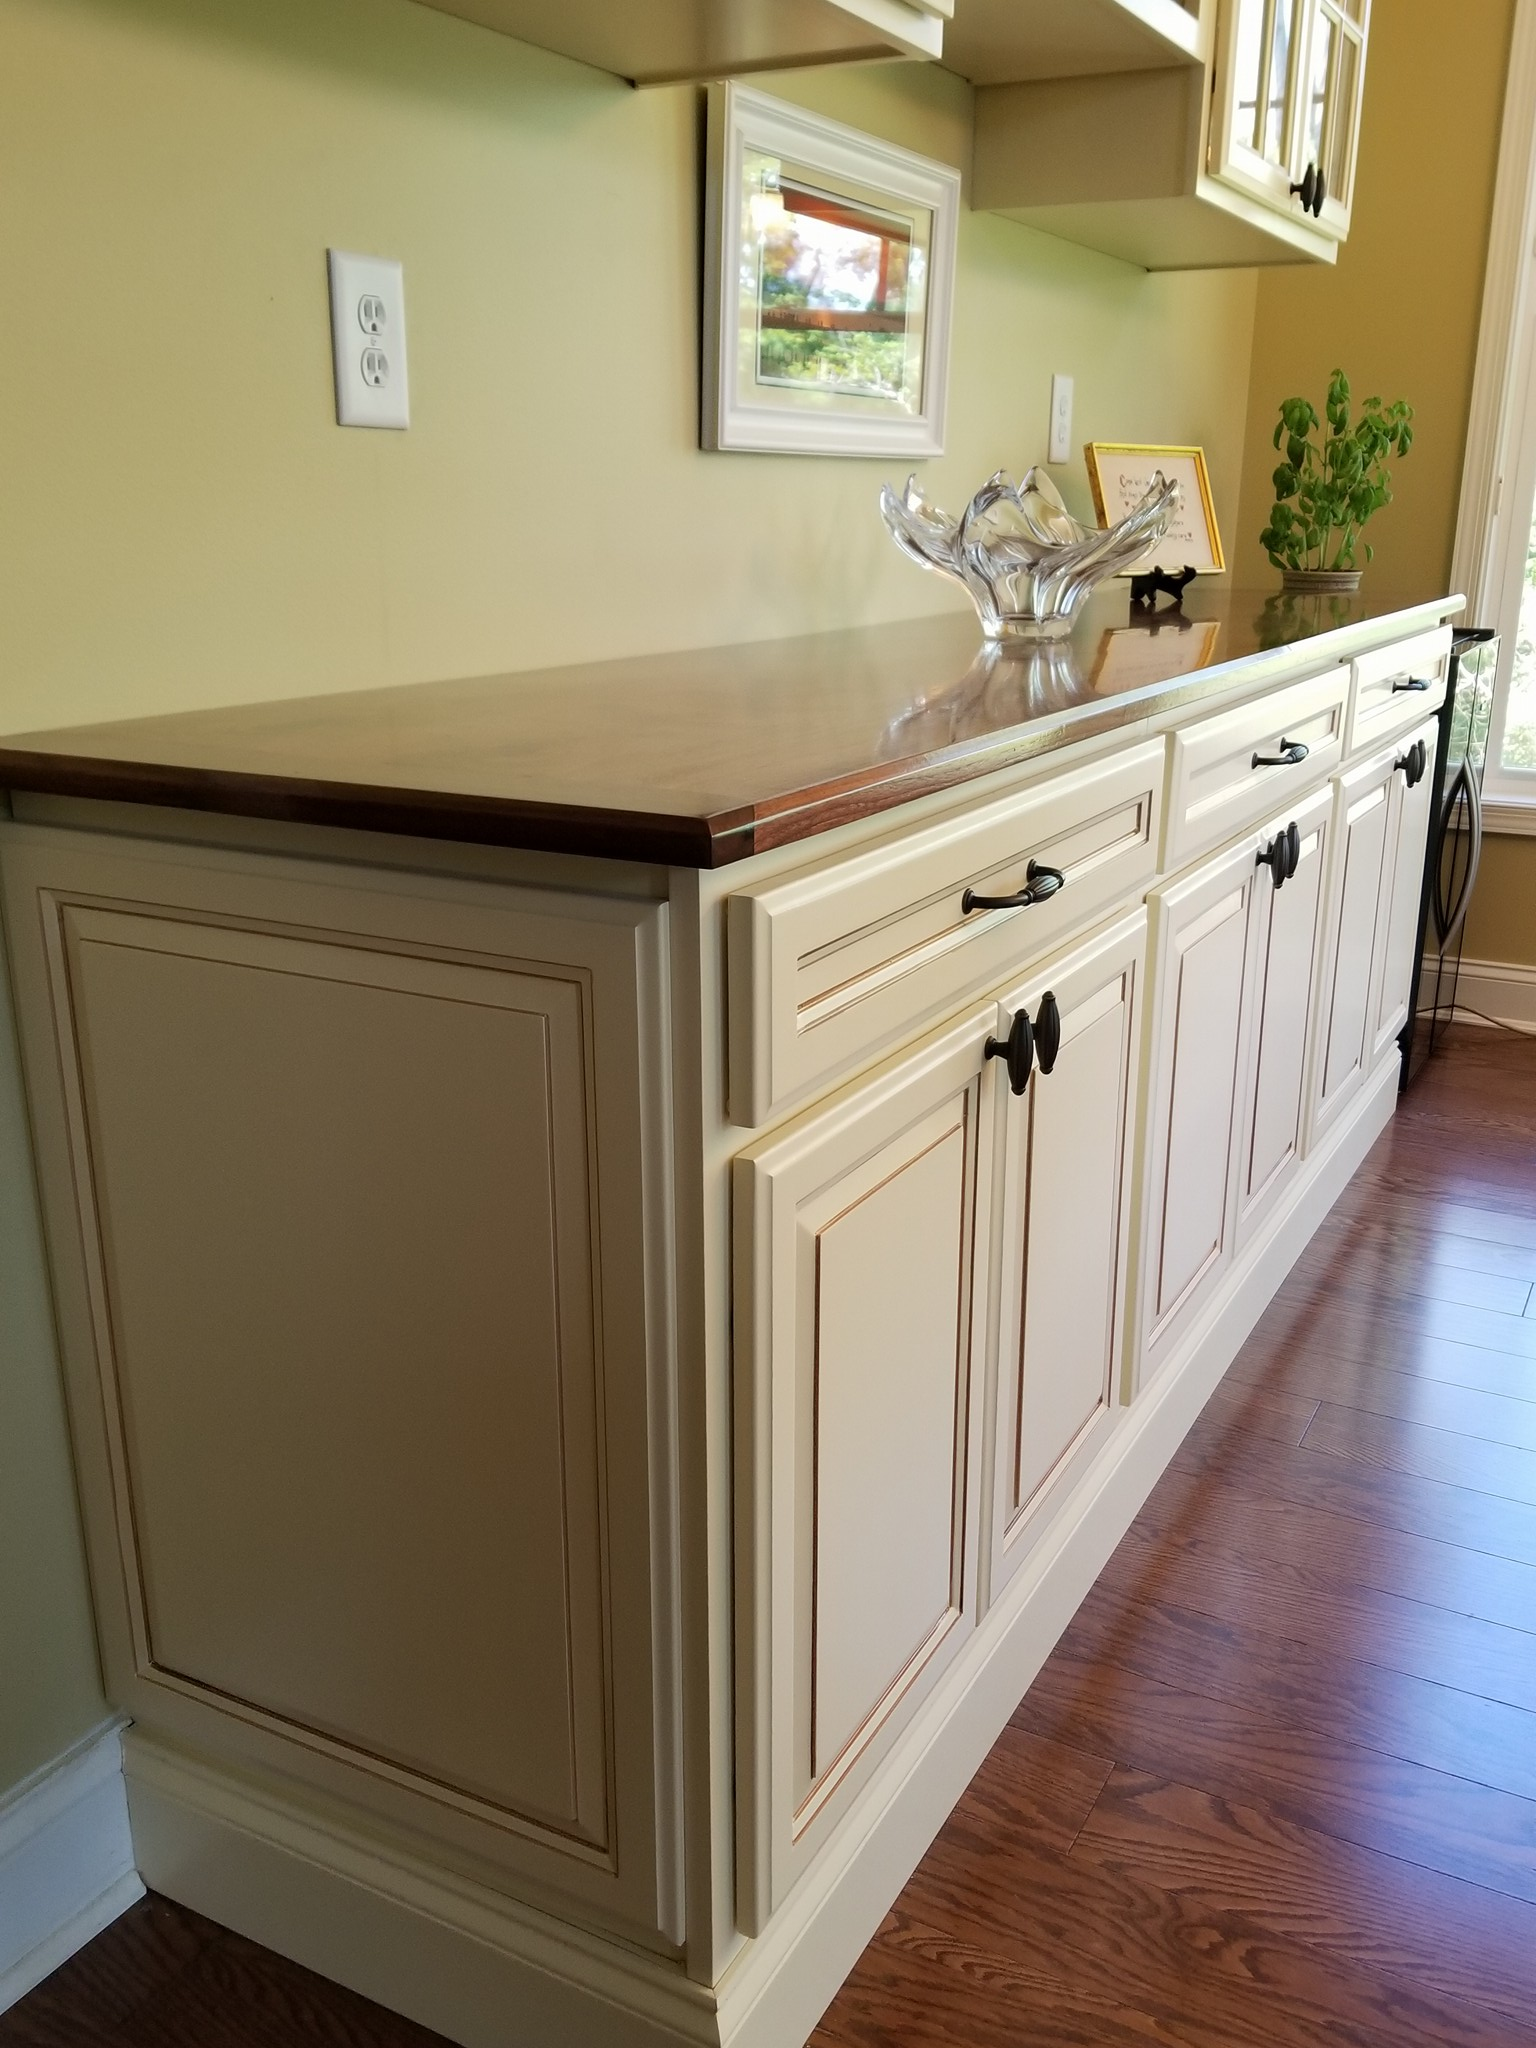 Custom Cabinets Delaware Sussex County Wood Slabs Wood Tops Hayes Custom Interiors Delaware Sussex County